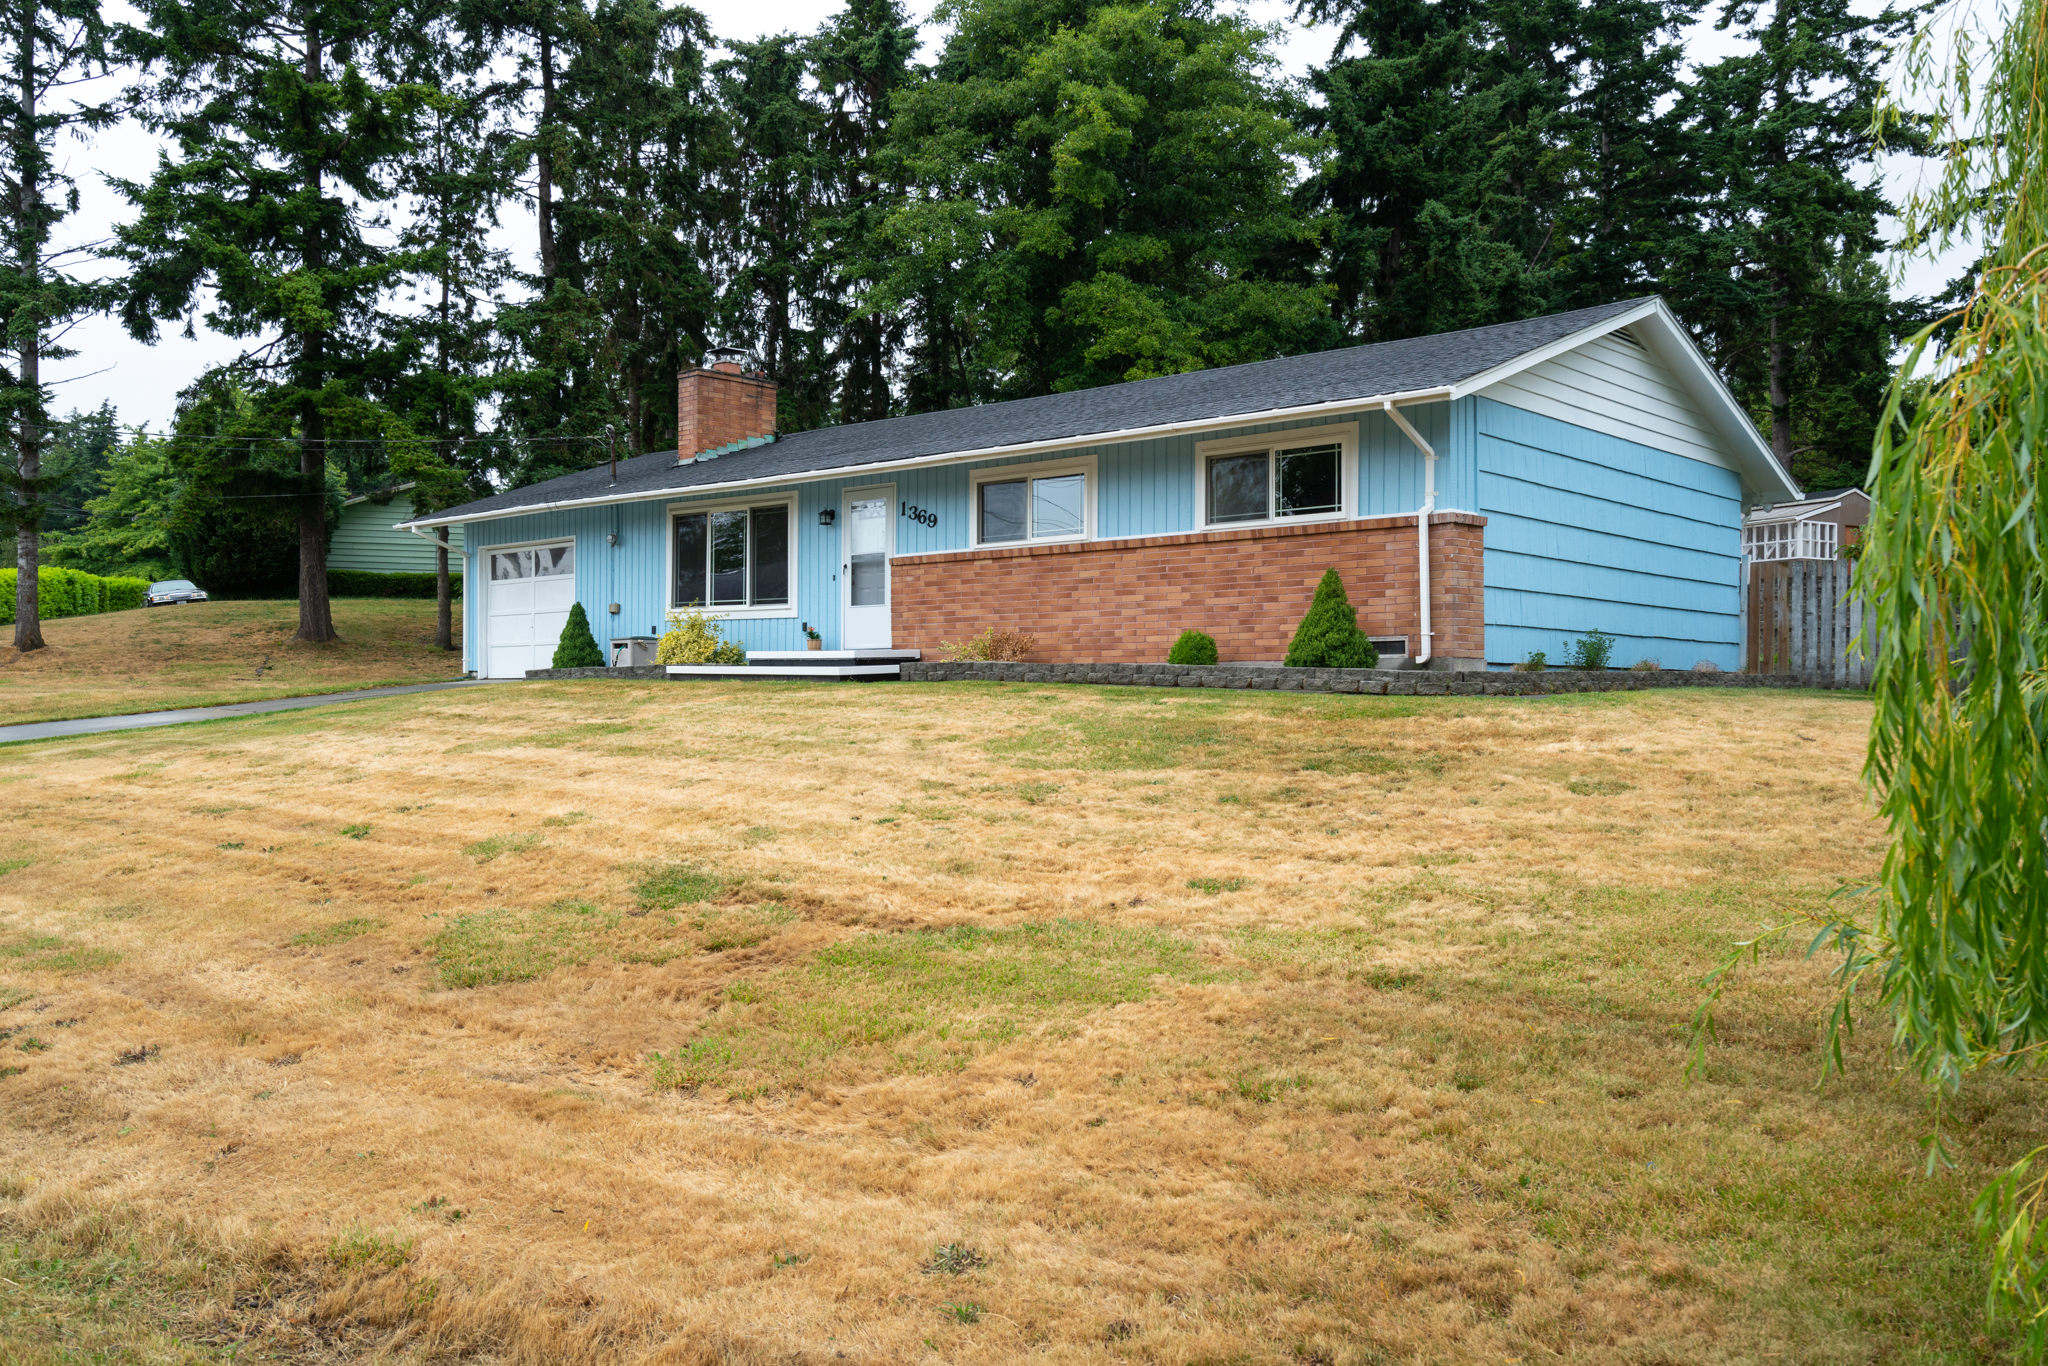 1369 Orchard Loop - Oak Harbor, WA 98277